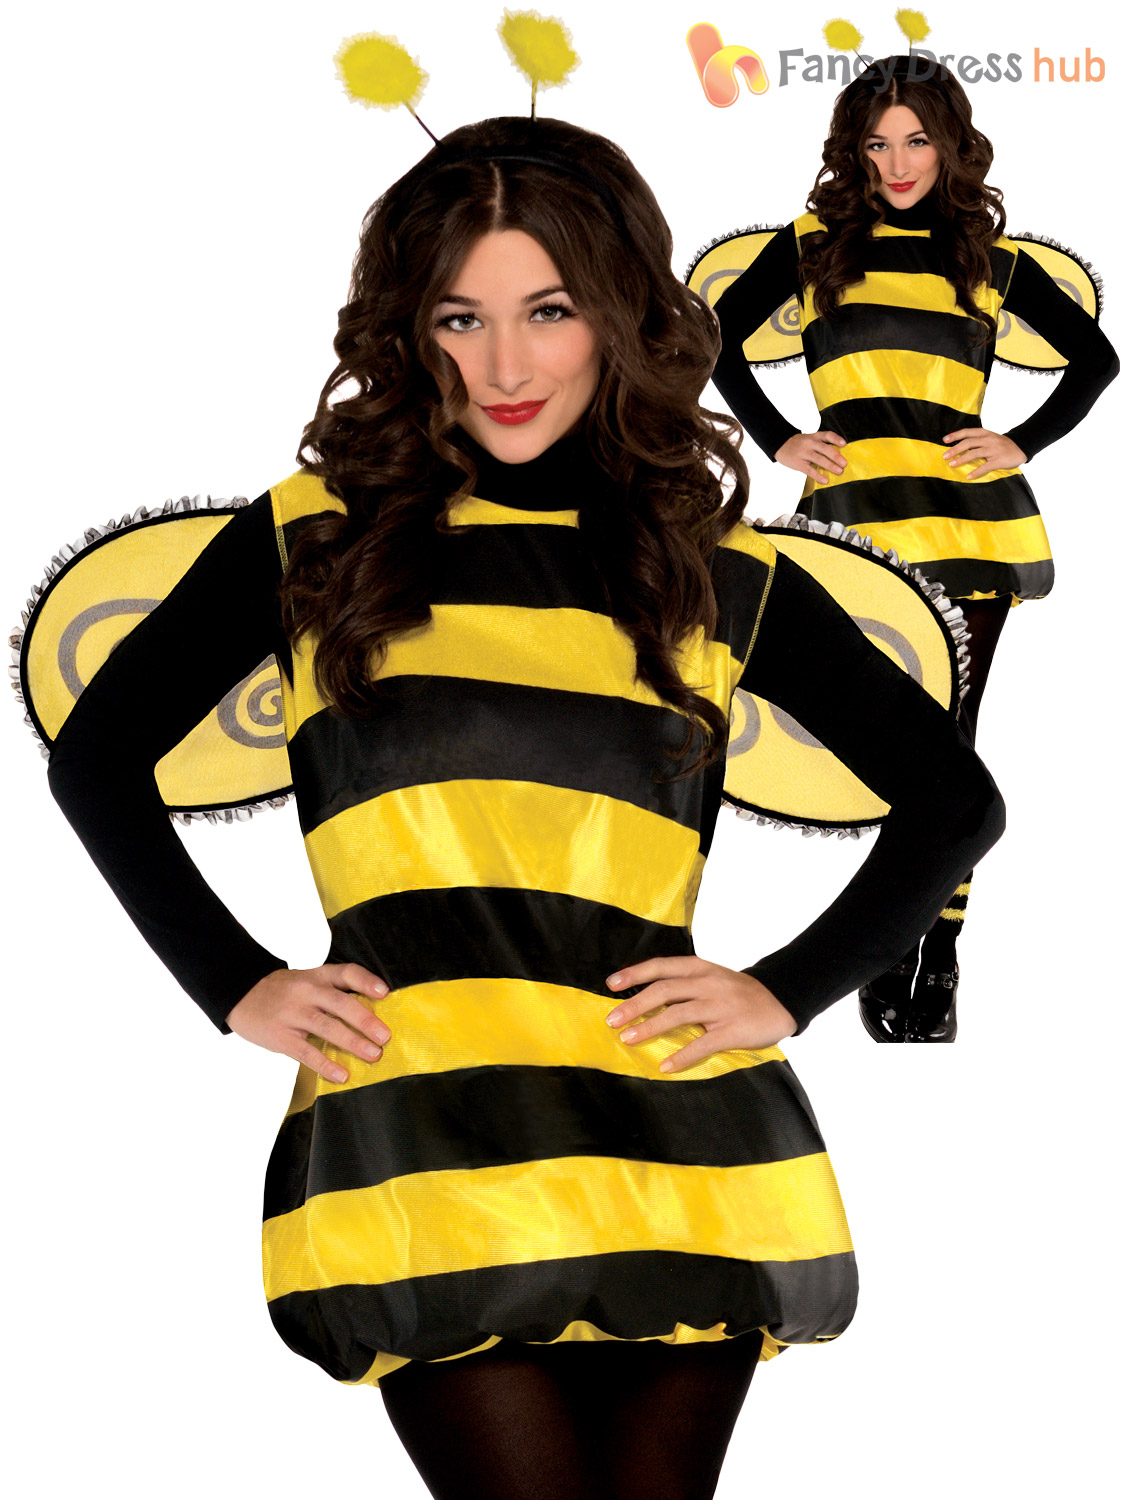 Final, sorry, homemade bug costumes for adults that